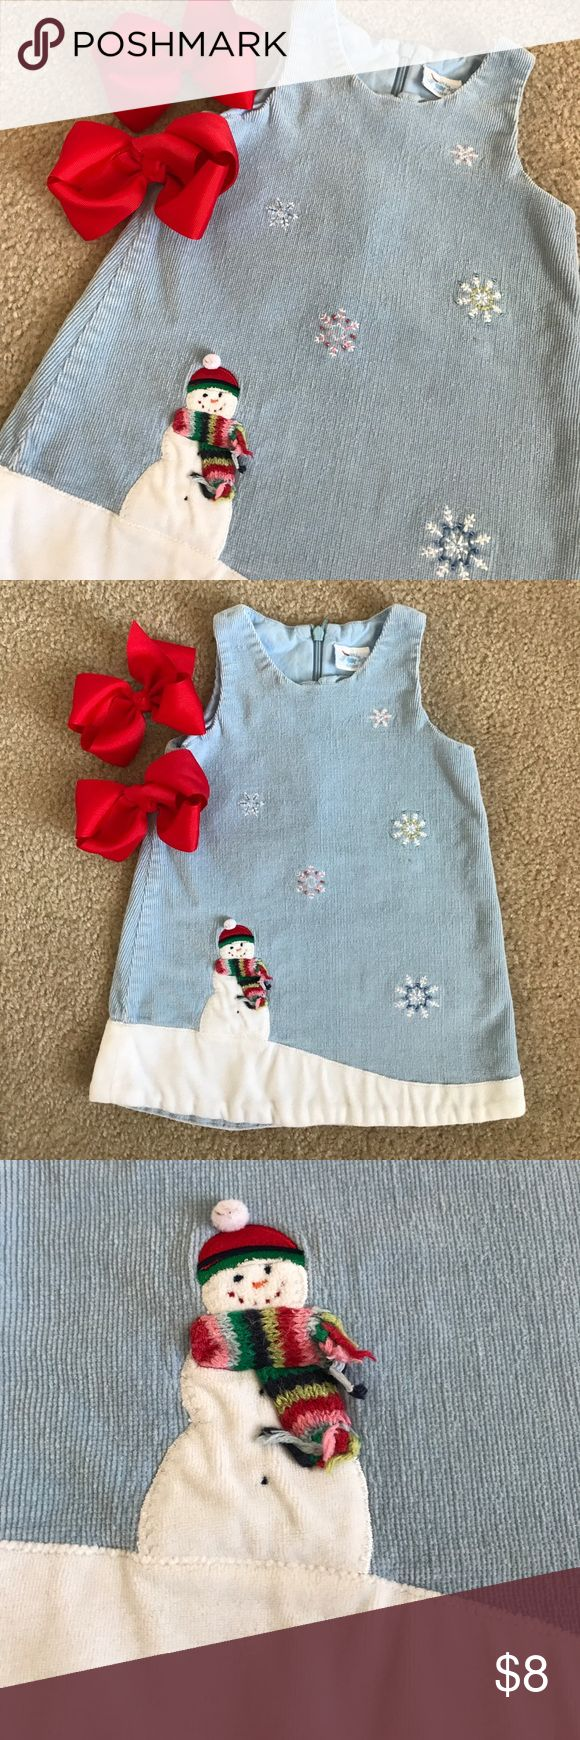 ❄️☃️Hartstrings Snowman Christmas Jumper Dress Adorable for Christmas and Winter! Small spot - see pic. Smoke-free, pet-free home. Bows not included. Dresses Casual